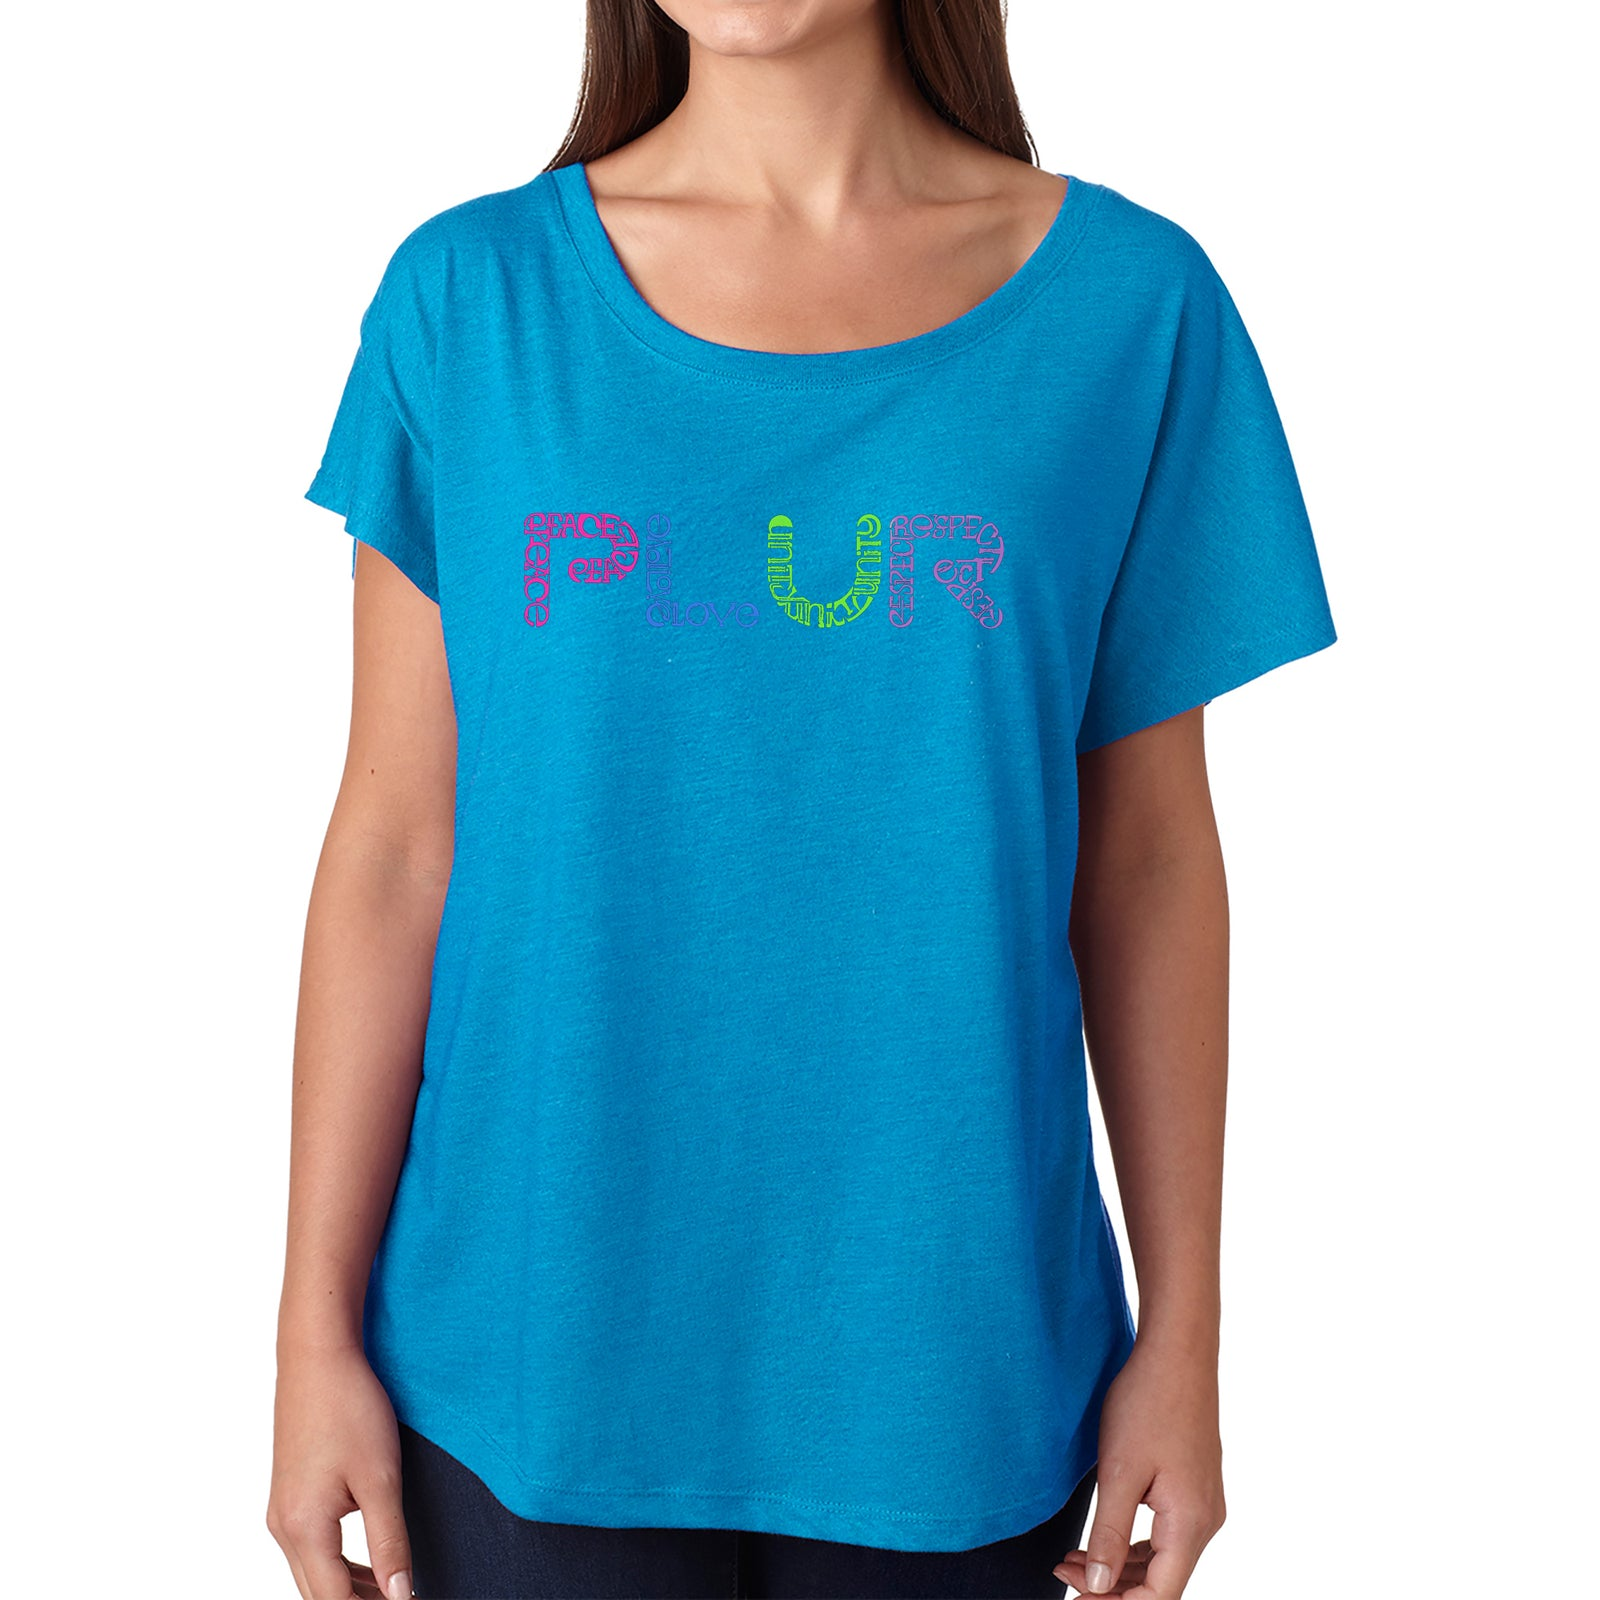 Women's Loose Fit Dolman Cut Word Art Shirt - PLUR